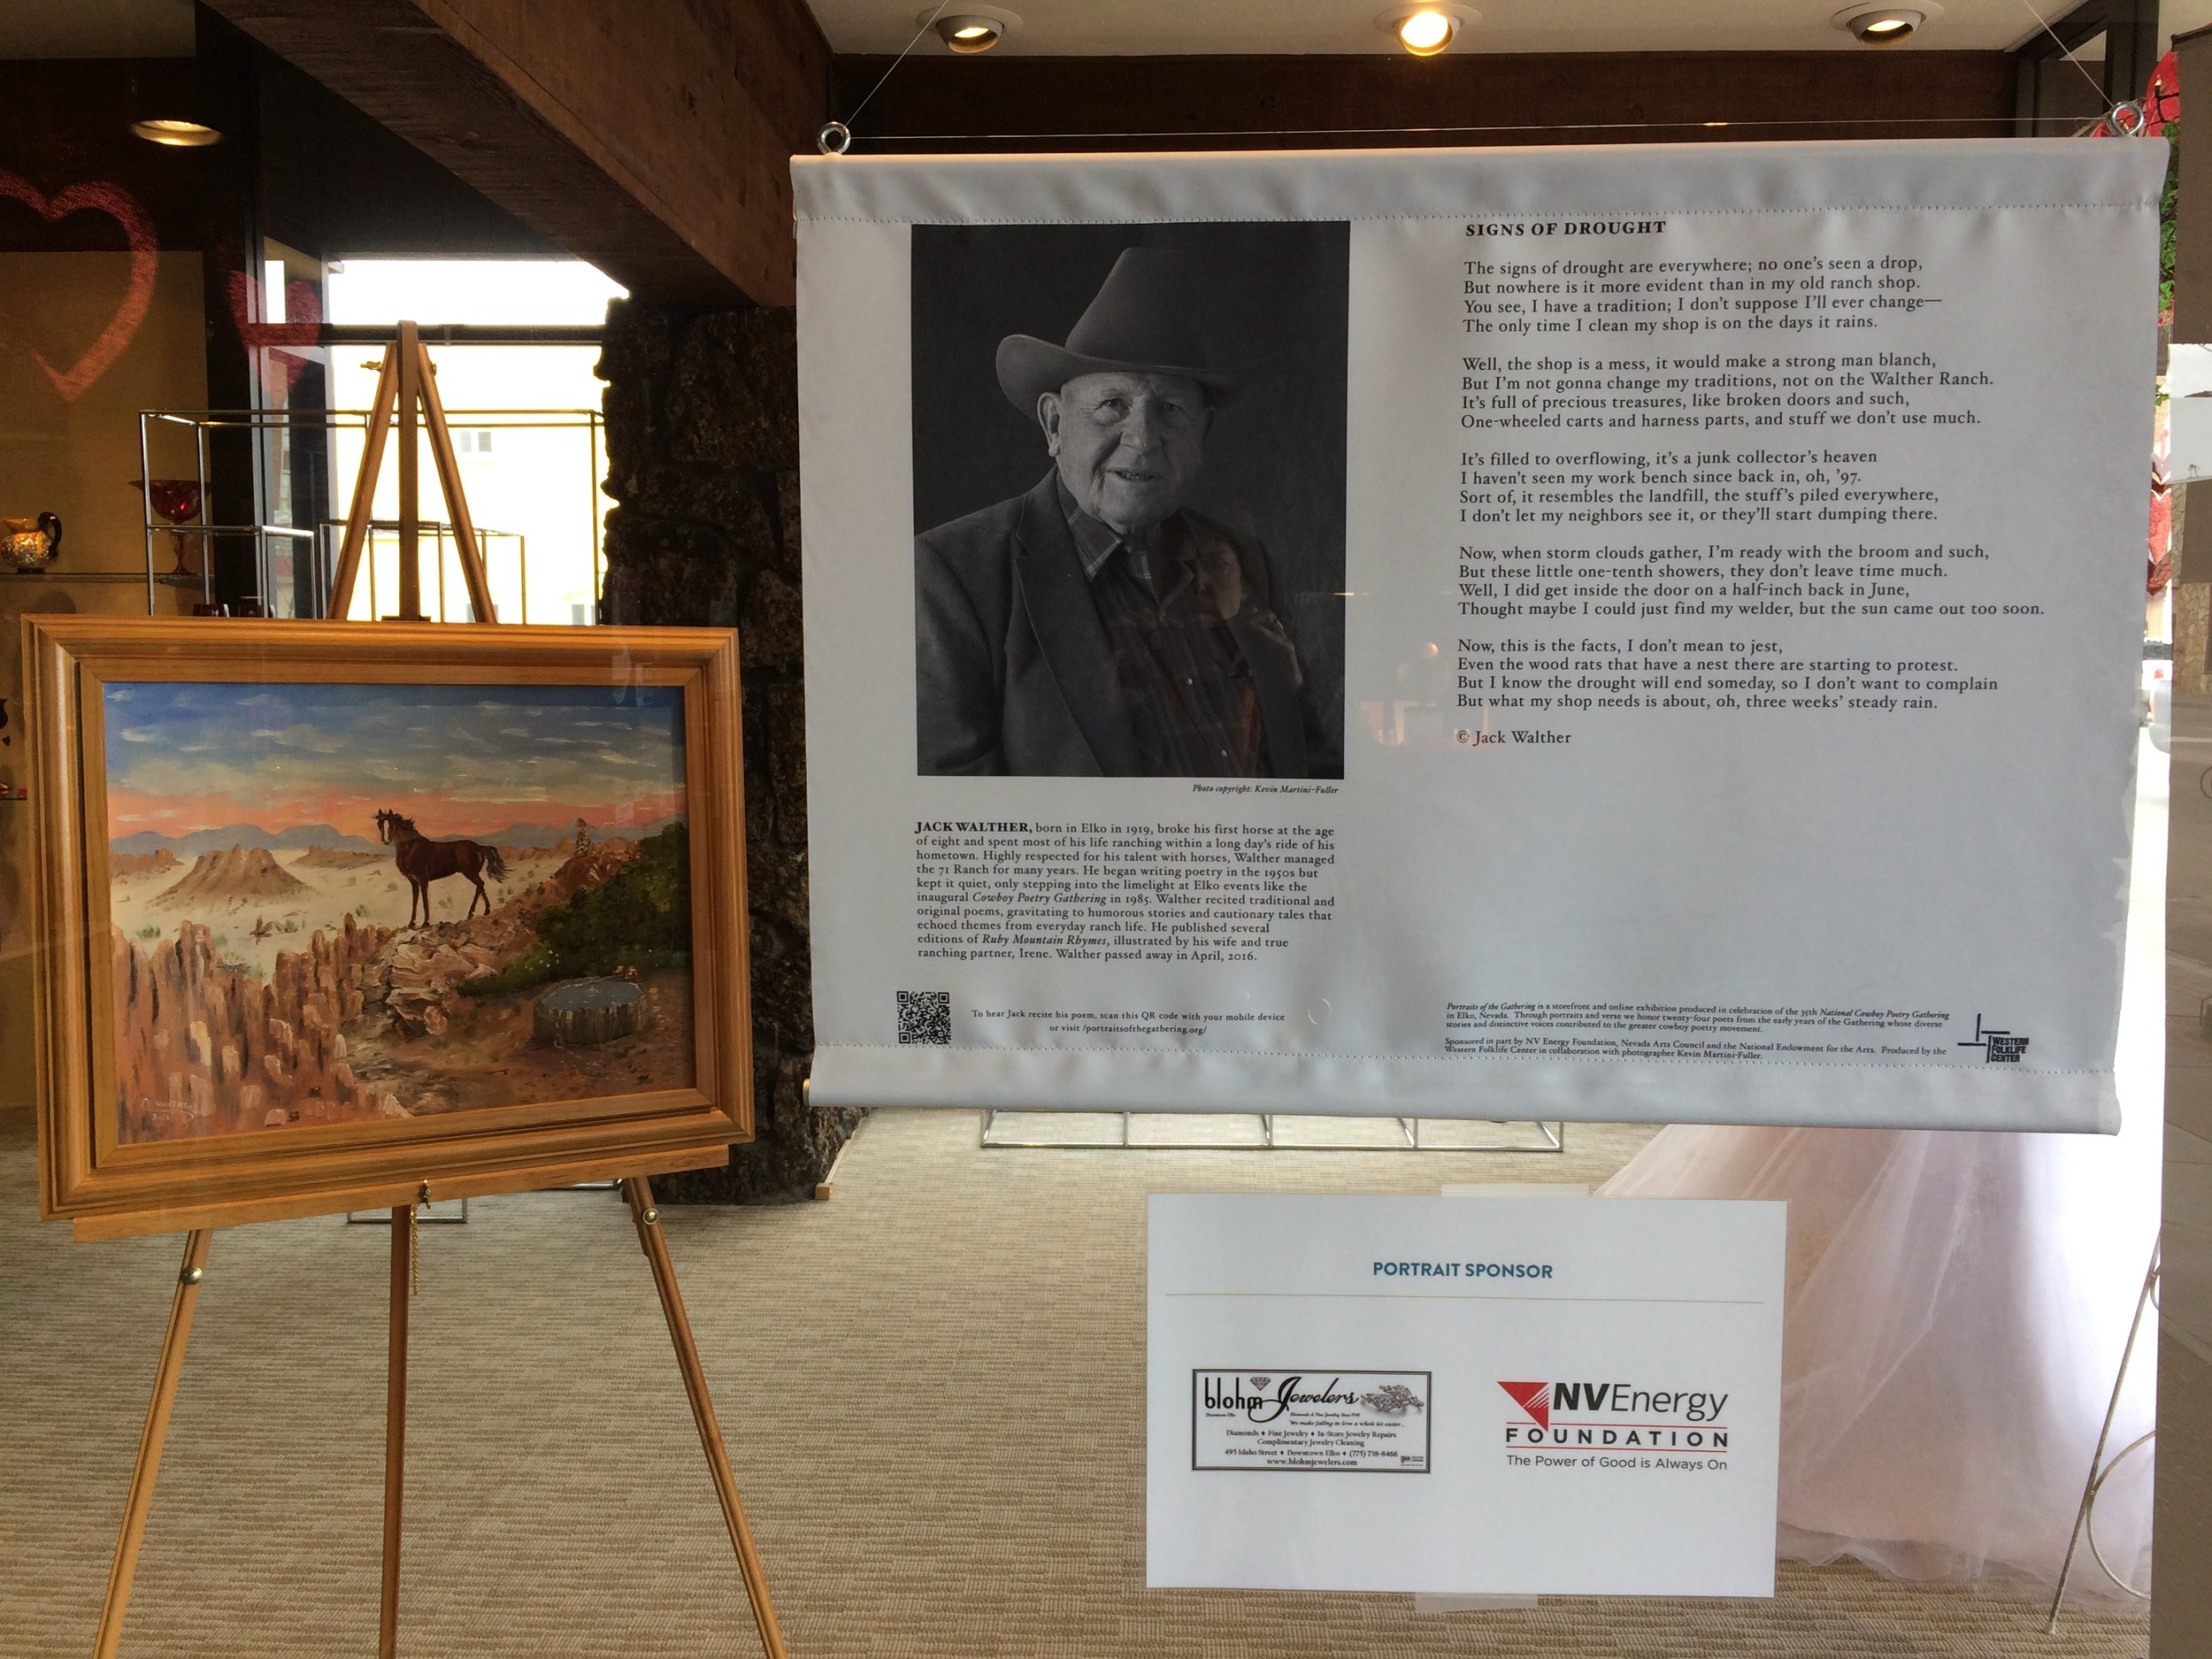 The late Elko County ranchers Jack Walther  Portrait  and Irene Walther art, featured at Blohm's Jewelers in downtown Elko, Nevada. Photo by Meg Glaser.